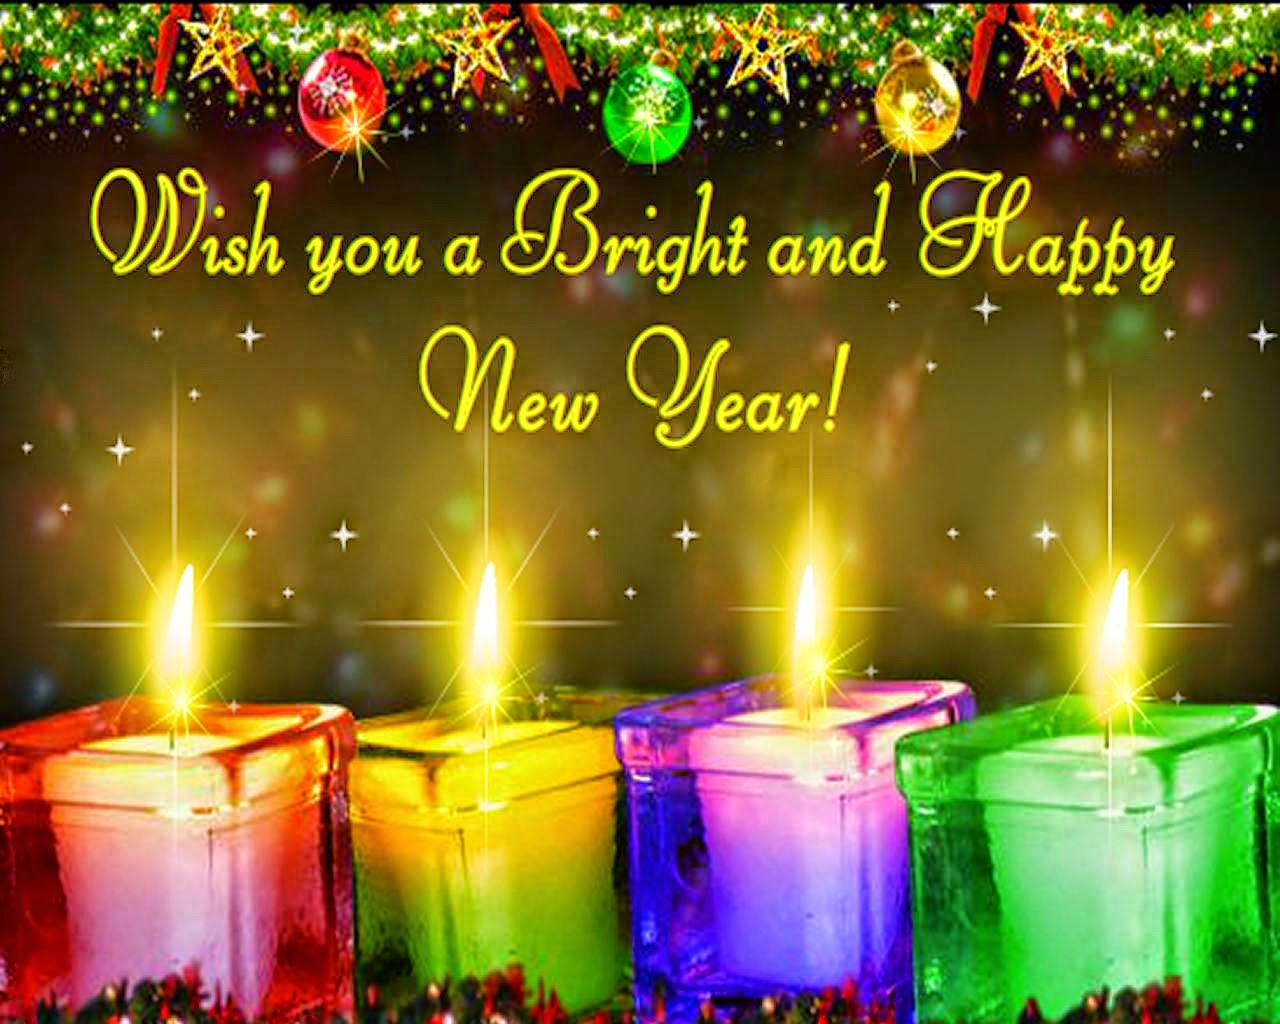 Big Beautiful Images Of New Year 2015 HD Wallpapers 3d FB Whats App Cover Pages